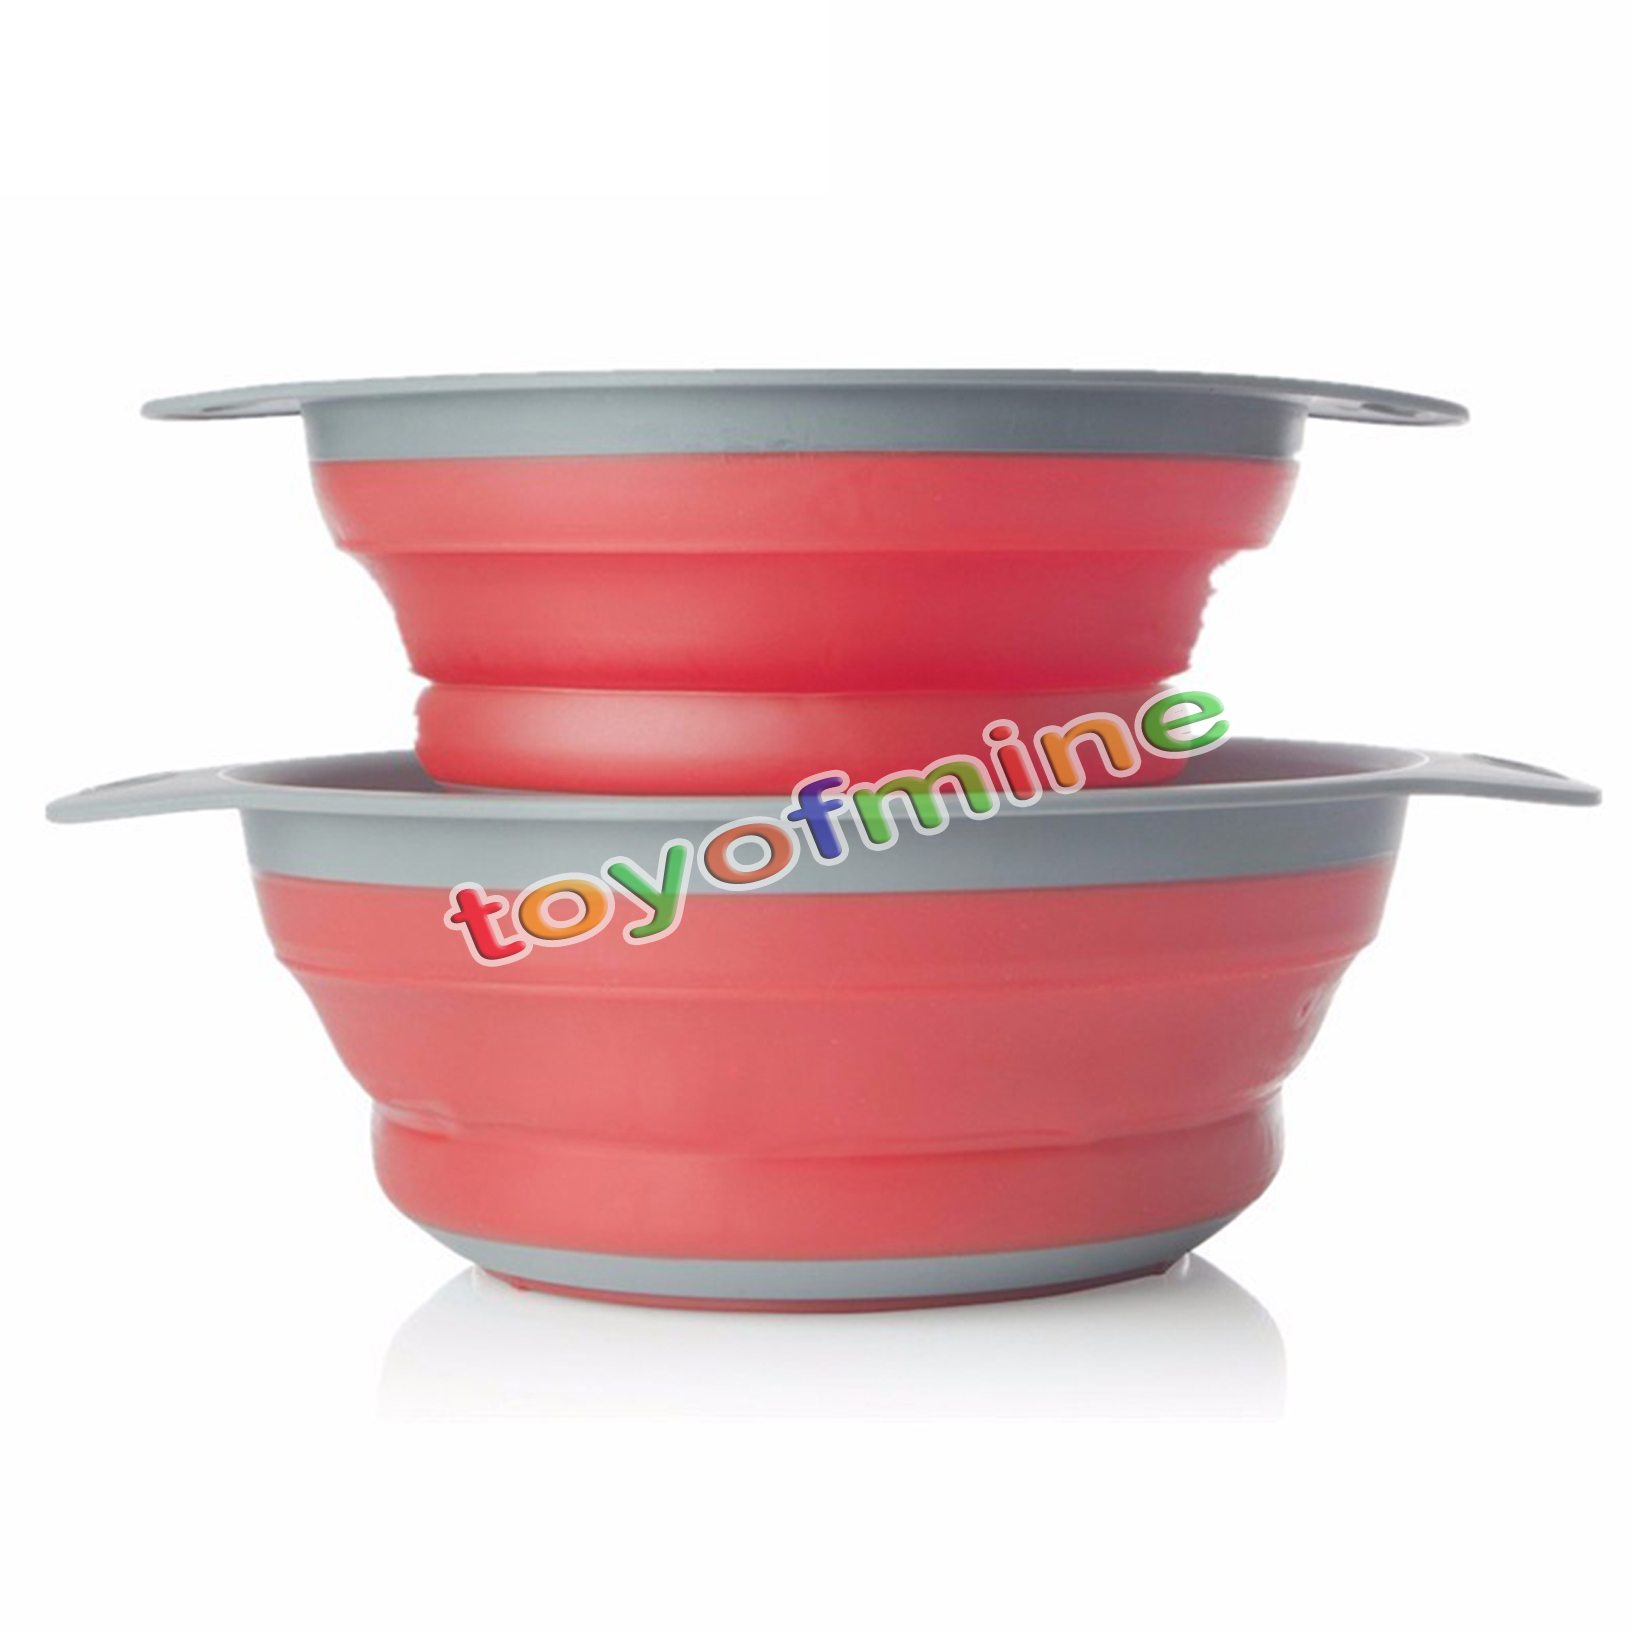 2 Pieces Collapsible Silicone Colander Folding Kitchen